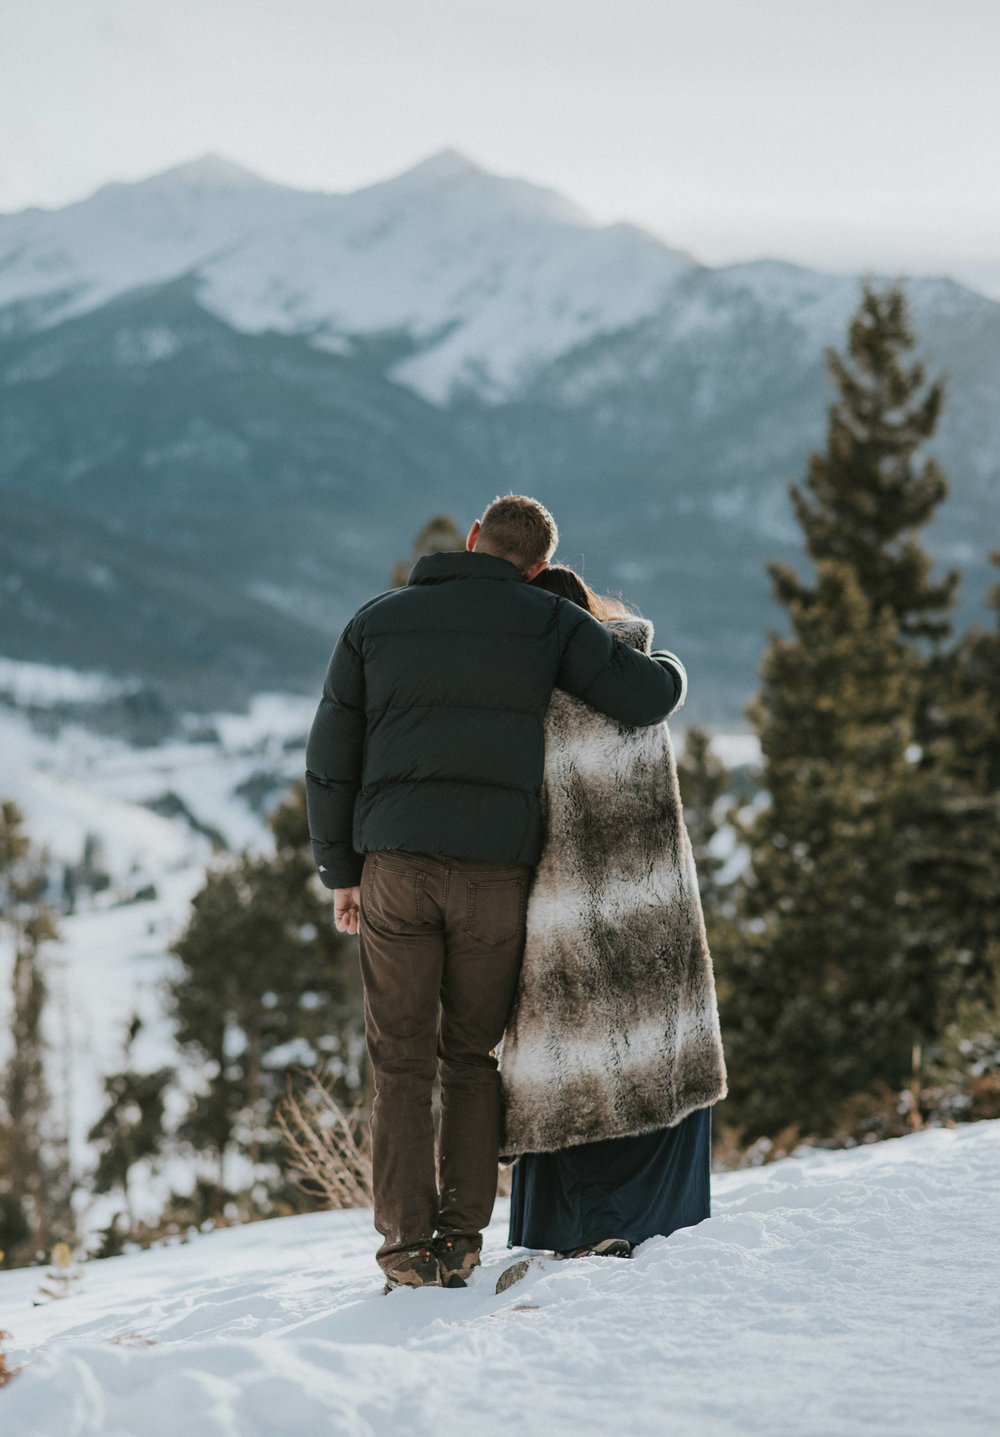 Adventure mountain elopement photographer based in Colorado.